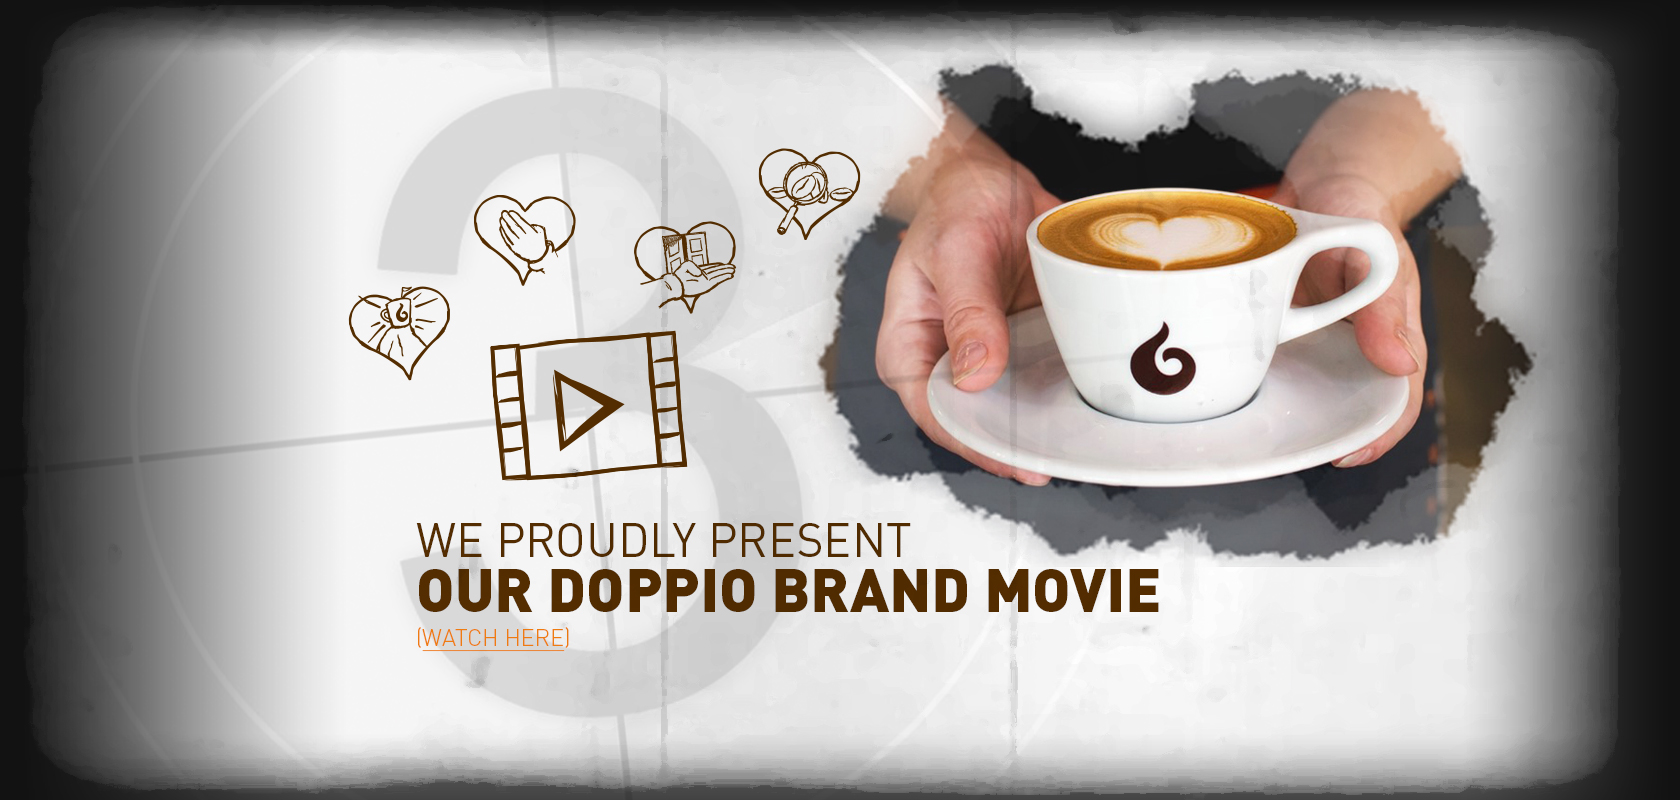 doppio brand movie 1680x660